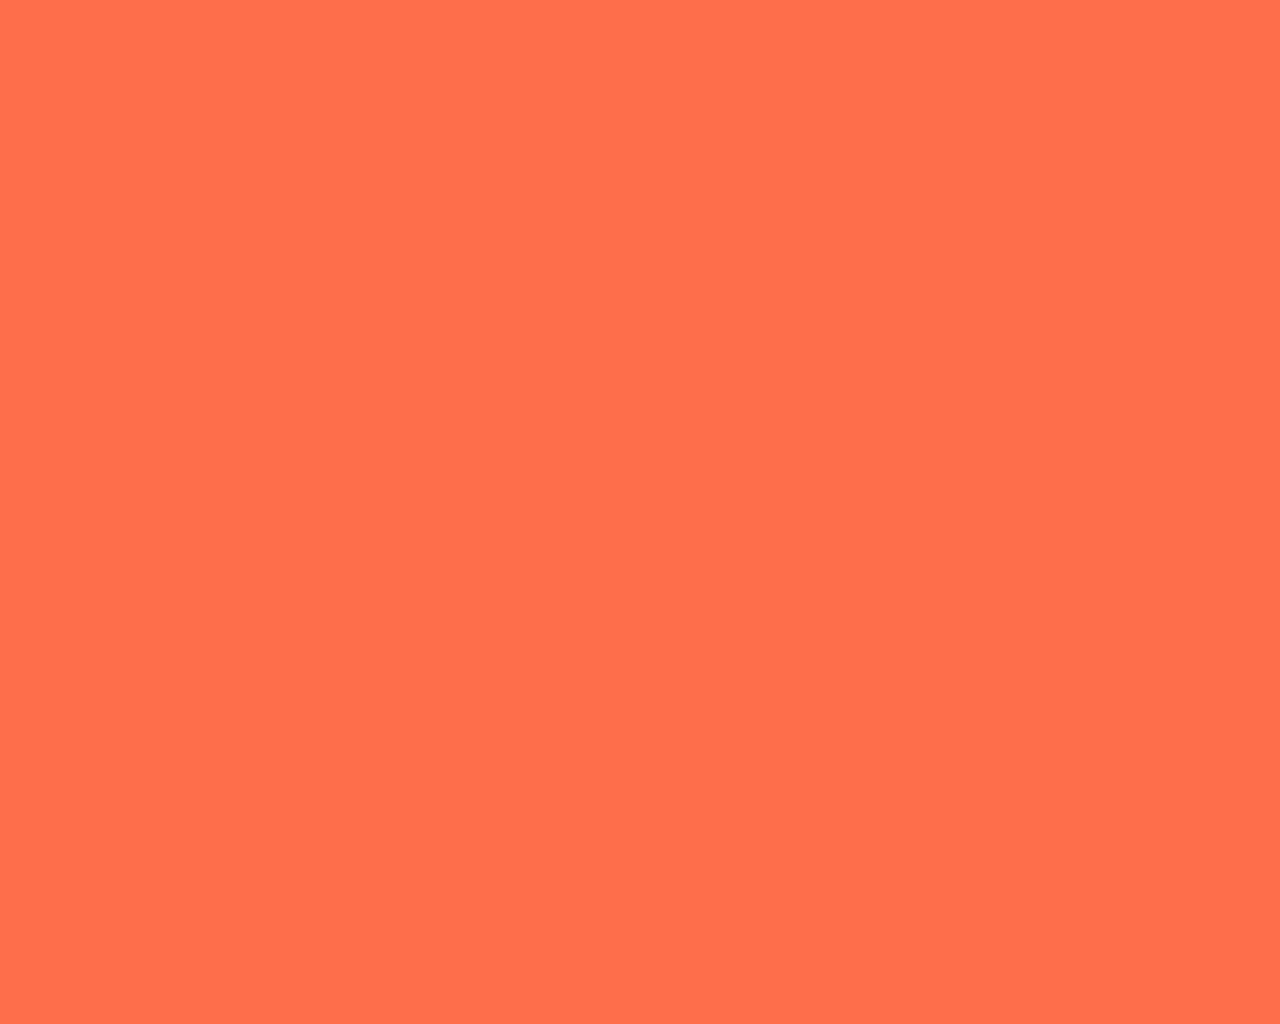 1280x1024 Outrageous Orange Solid Color Background